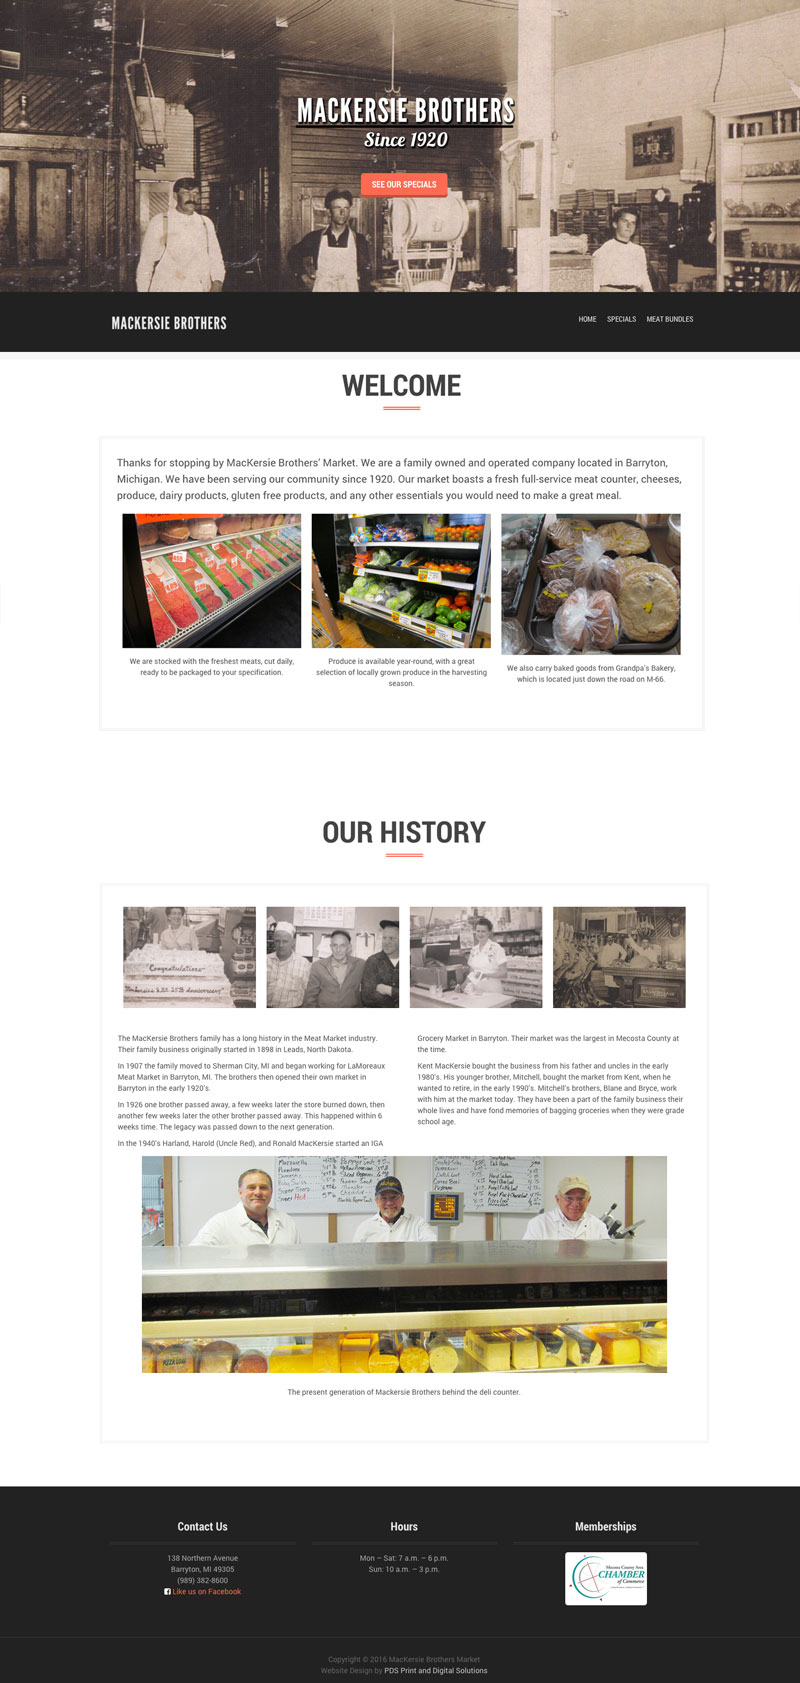 MacKersie Brother Meat Market in Barryton mi website design by PDS